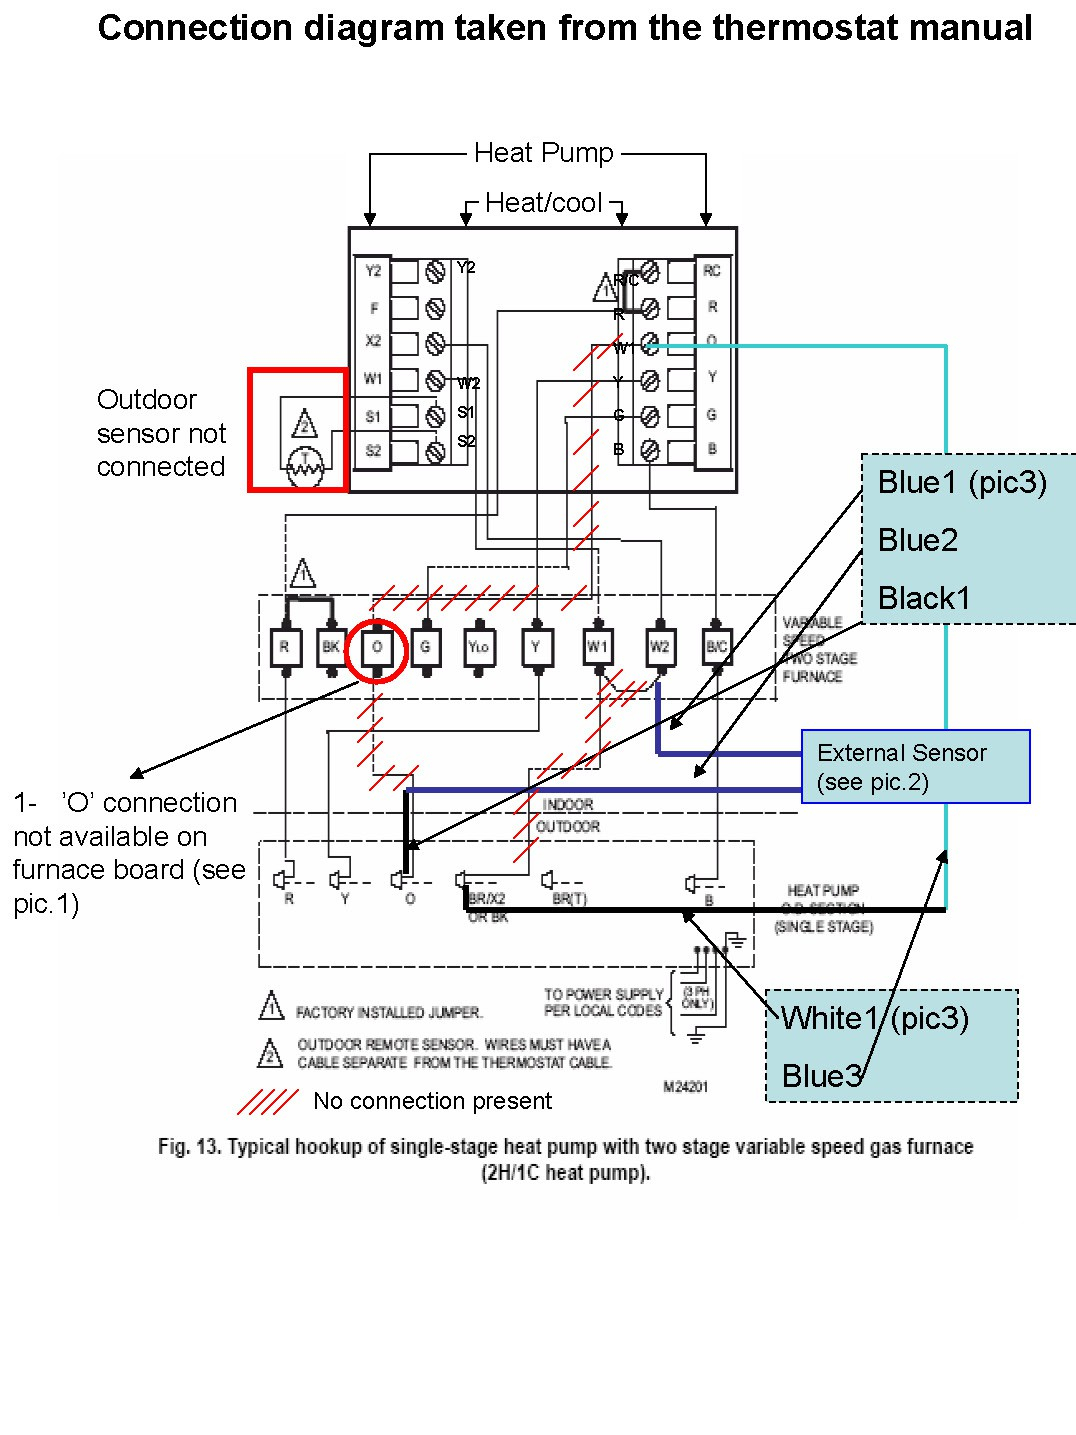 Trane Weathertron Heat Pump Wiring Diagram from wholefoodsonabudget.com